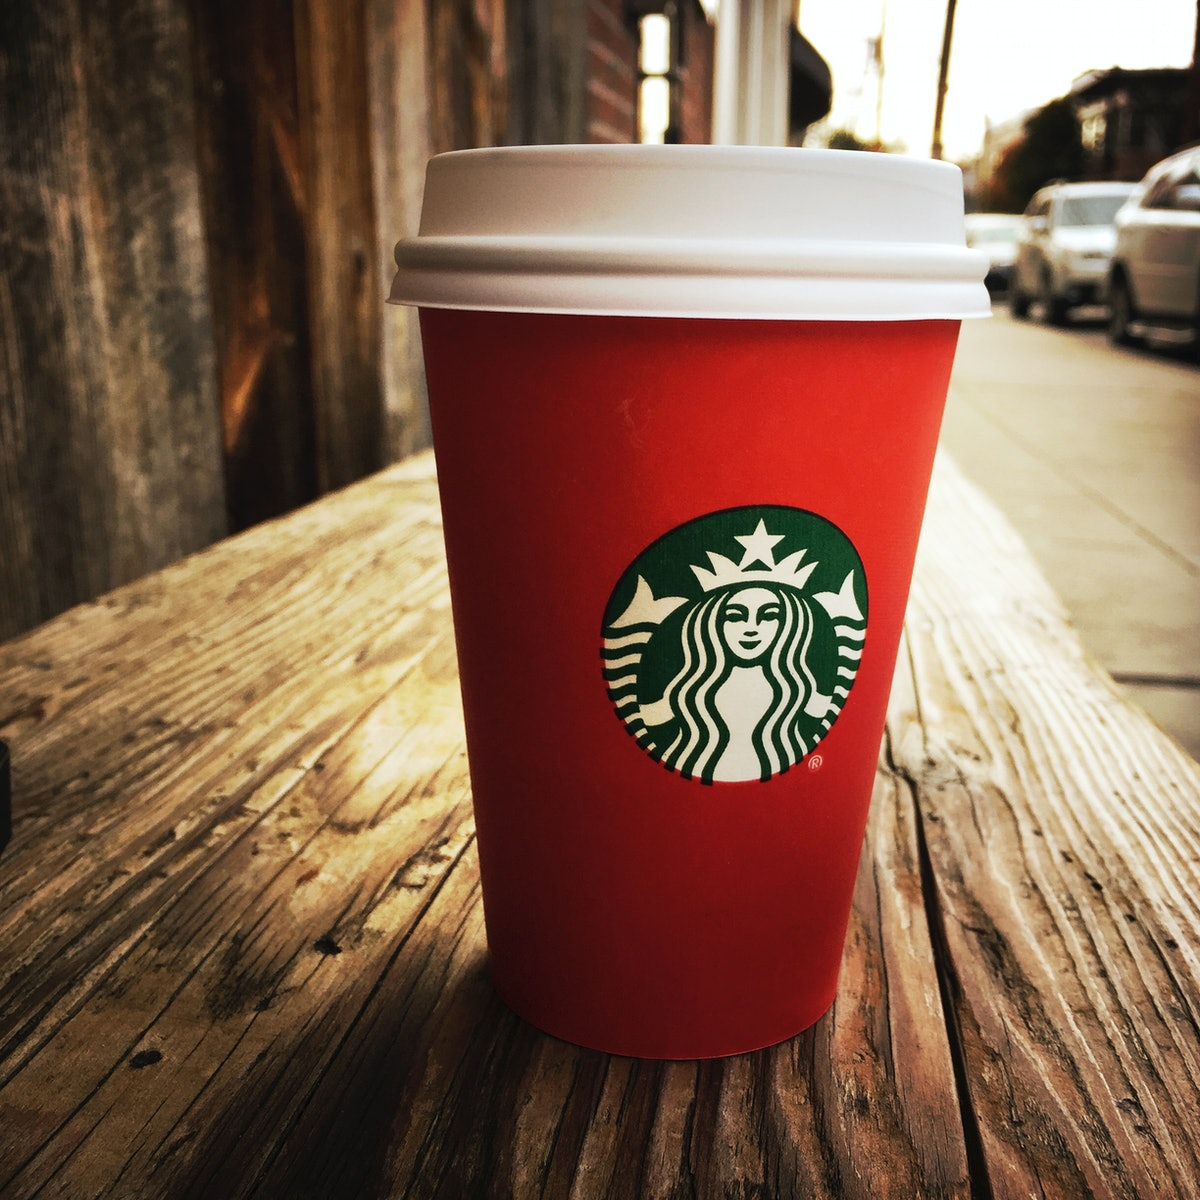 Starbucks' 2020 holiday hours may be different than usual.